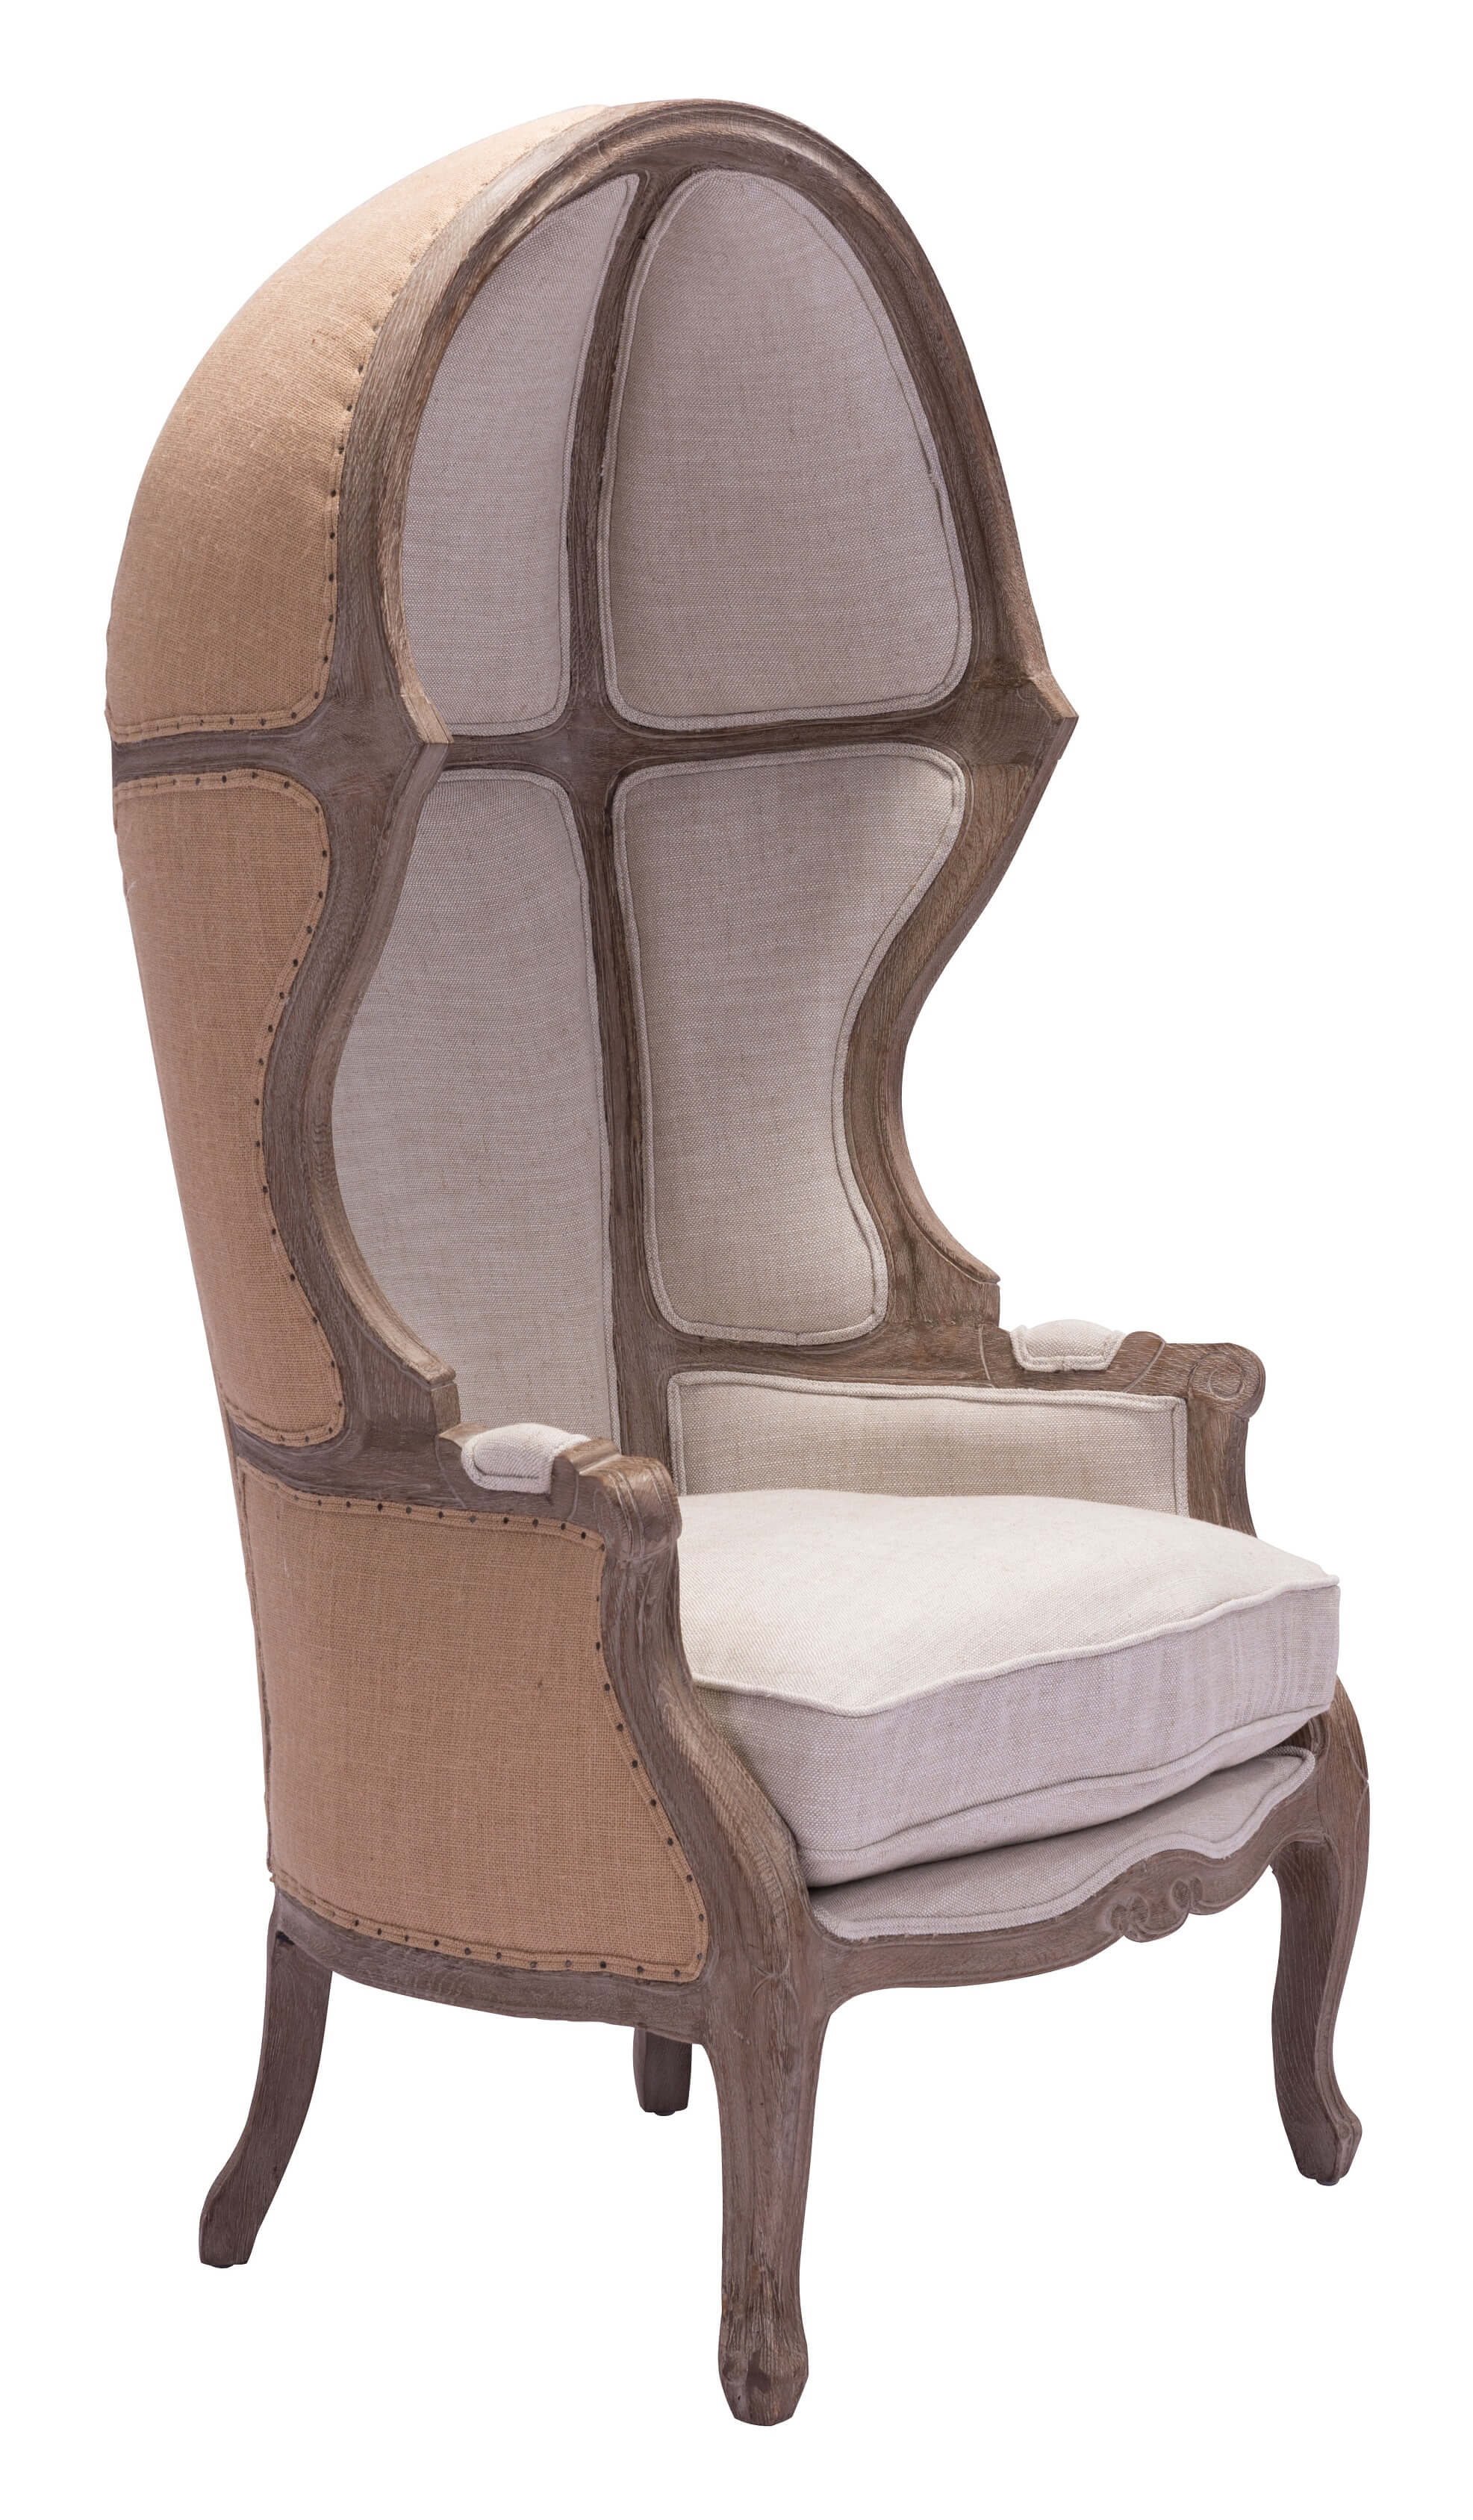 Ellis Solid Oak Wood Trim Occasional Chair Beige By Zuo